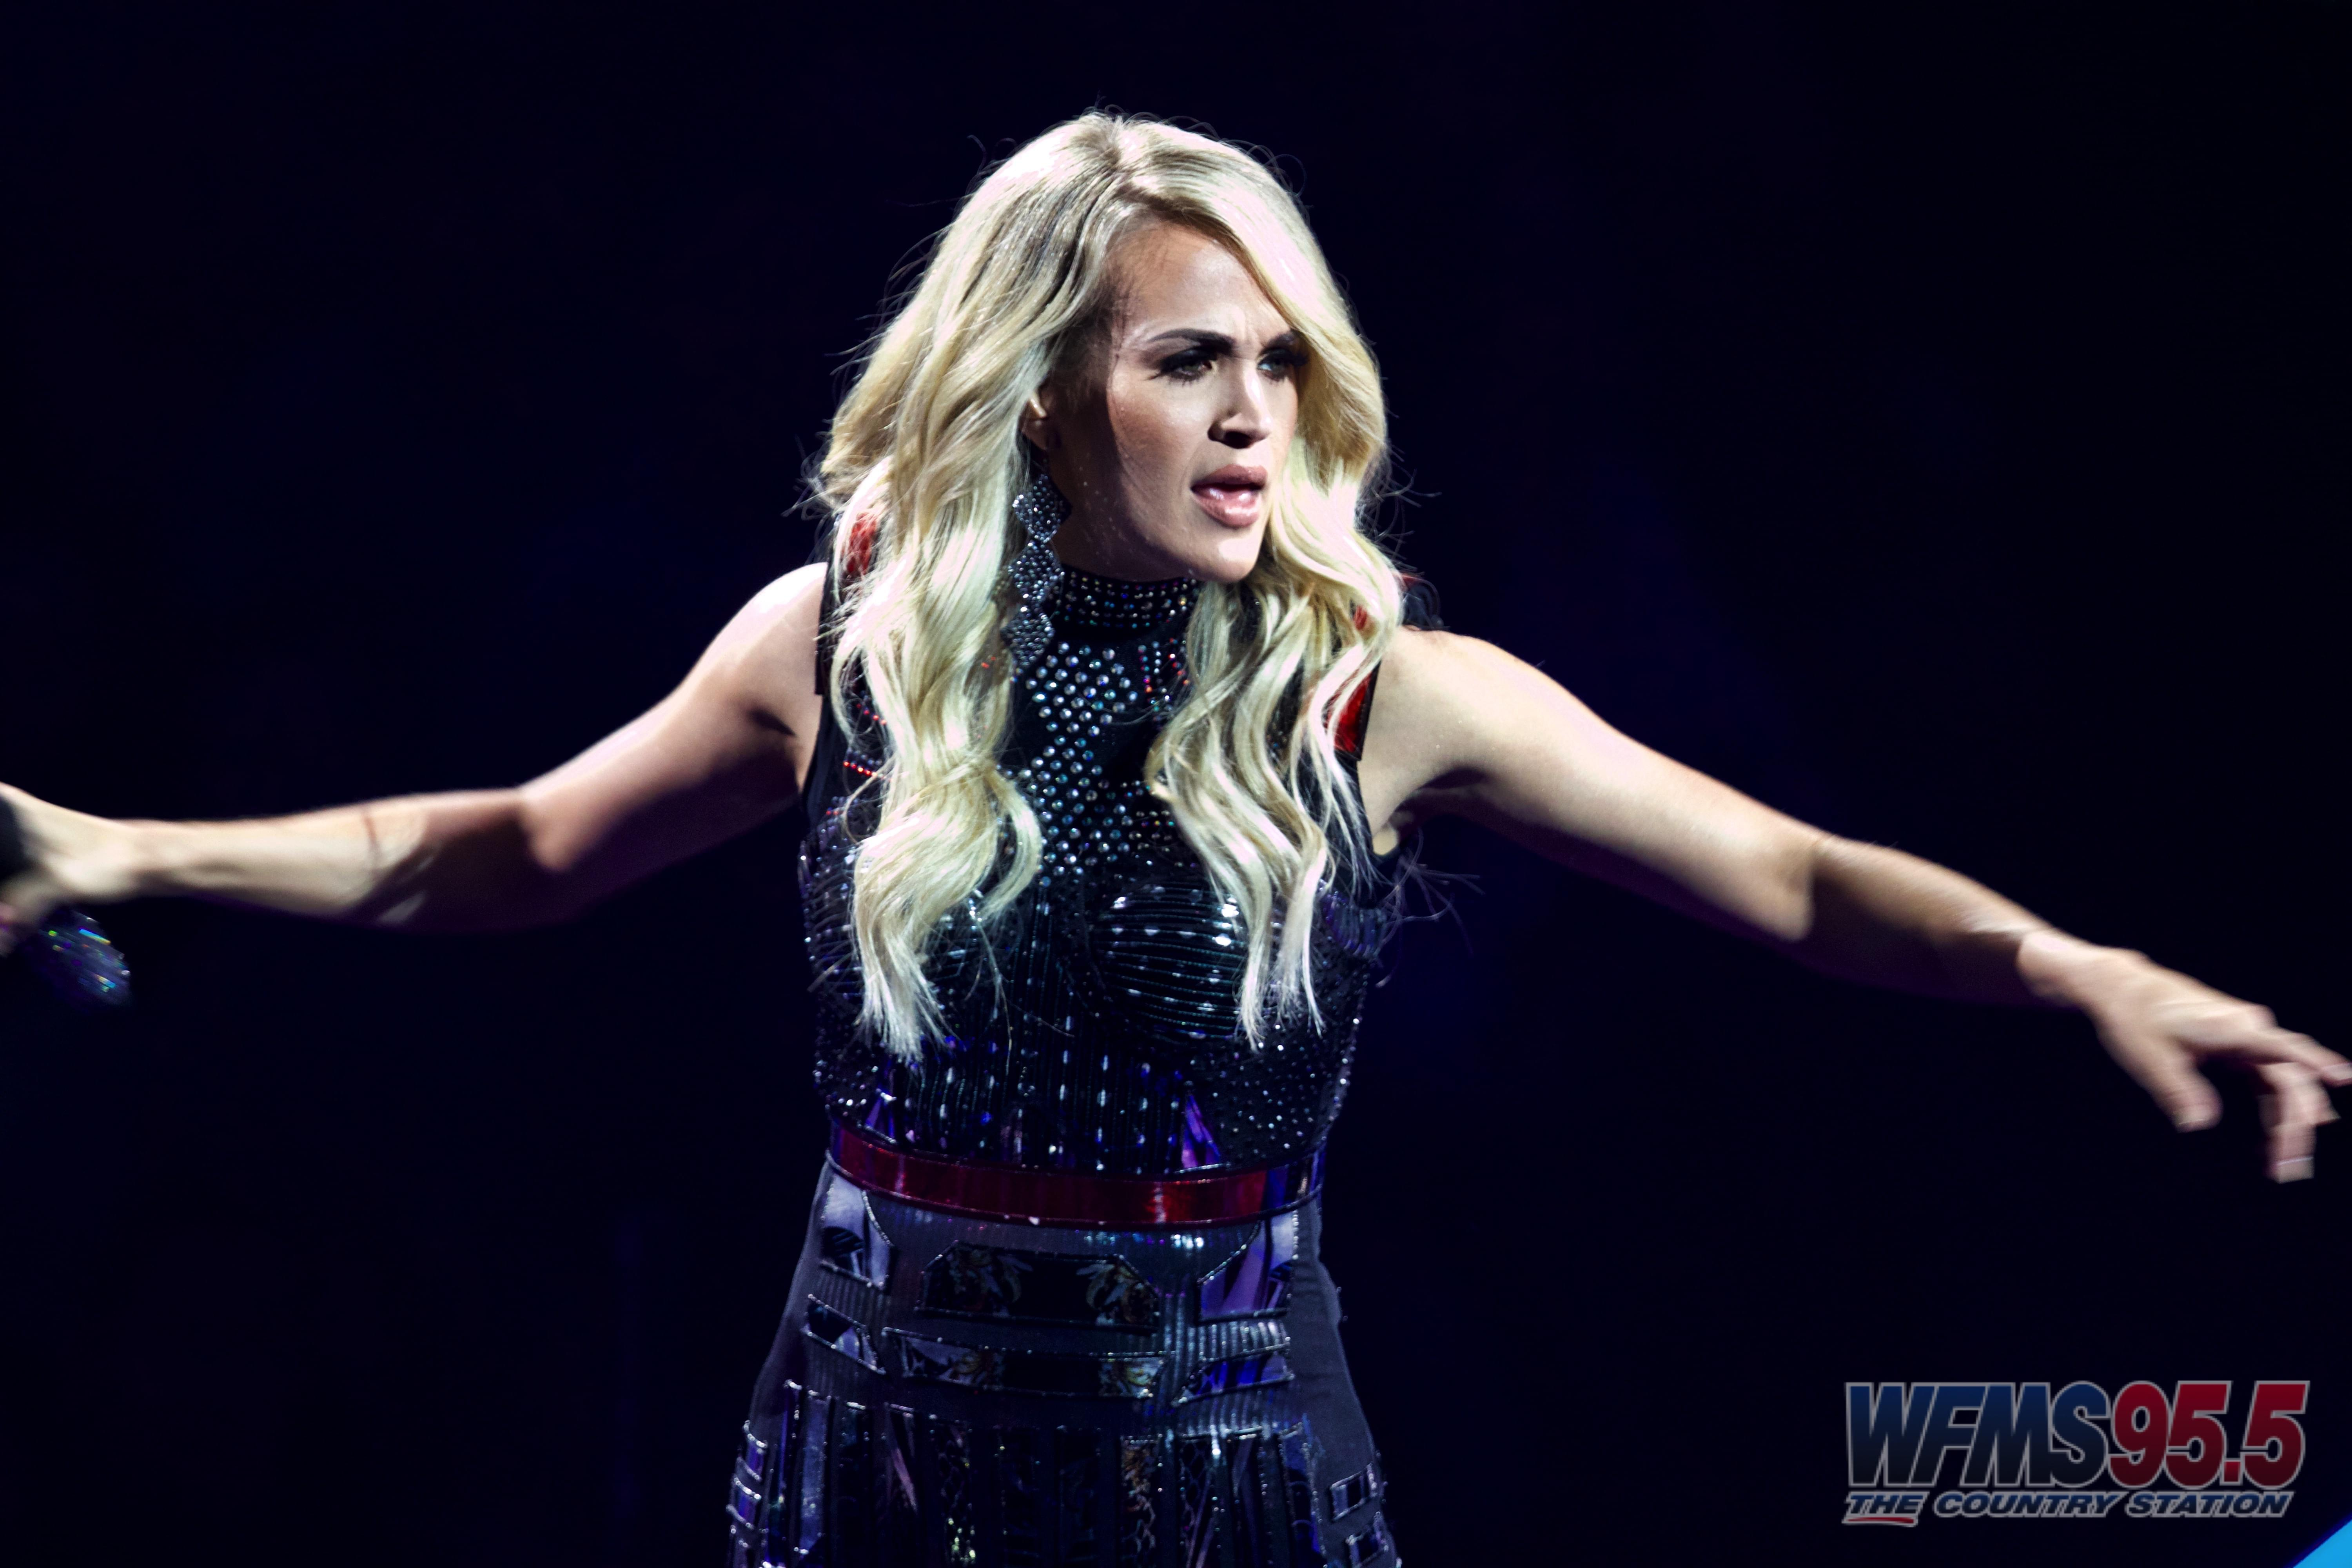 Carrie Underwood Concert Photos 6-16-19